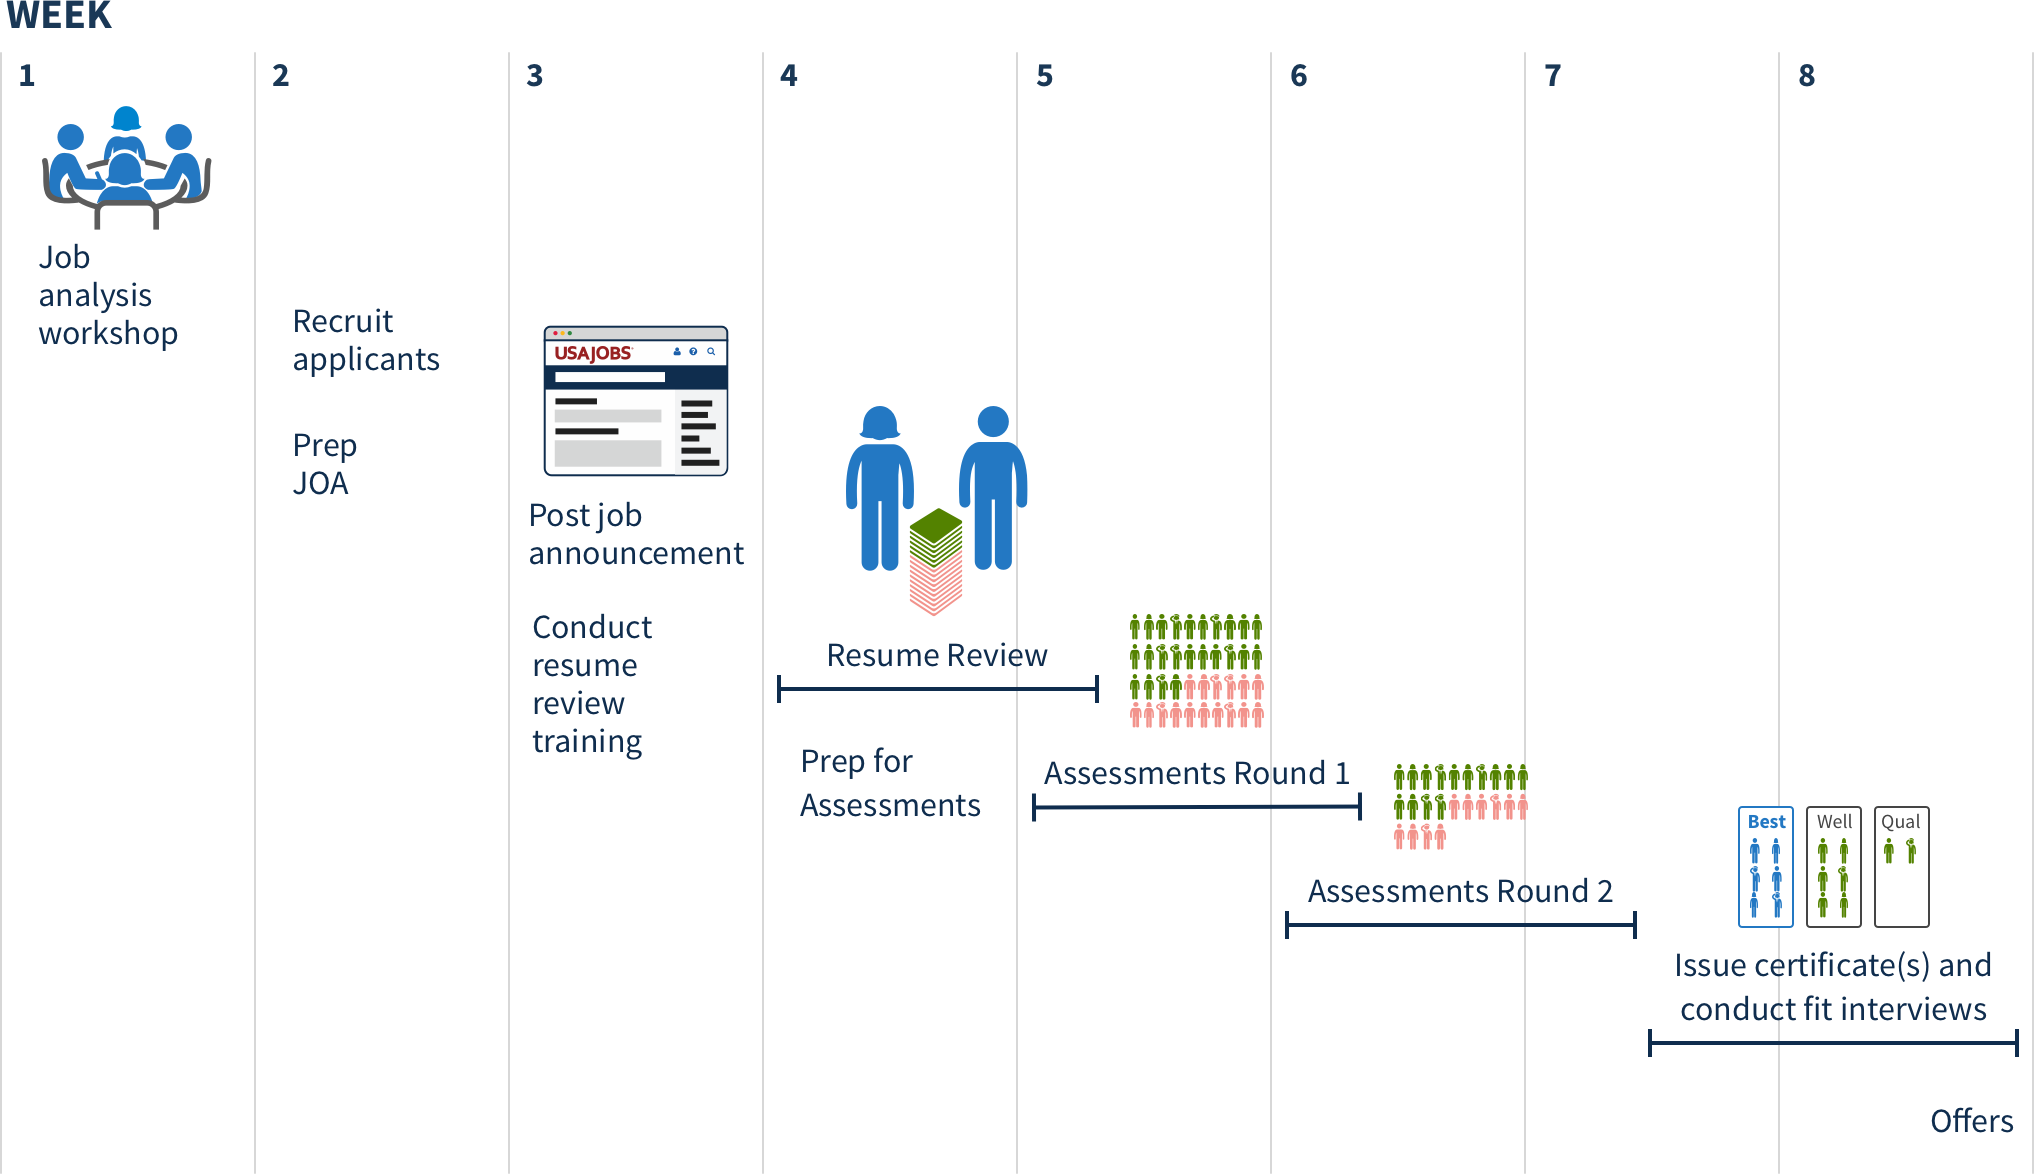 Timeline of the SME-QA process.